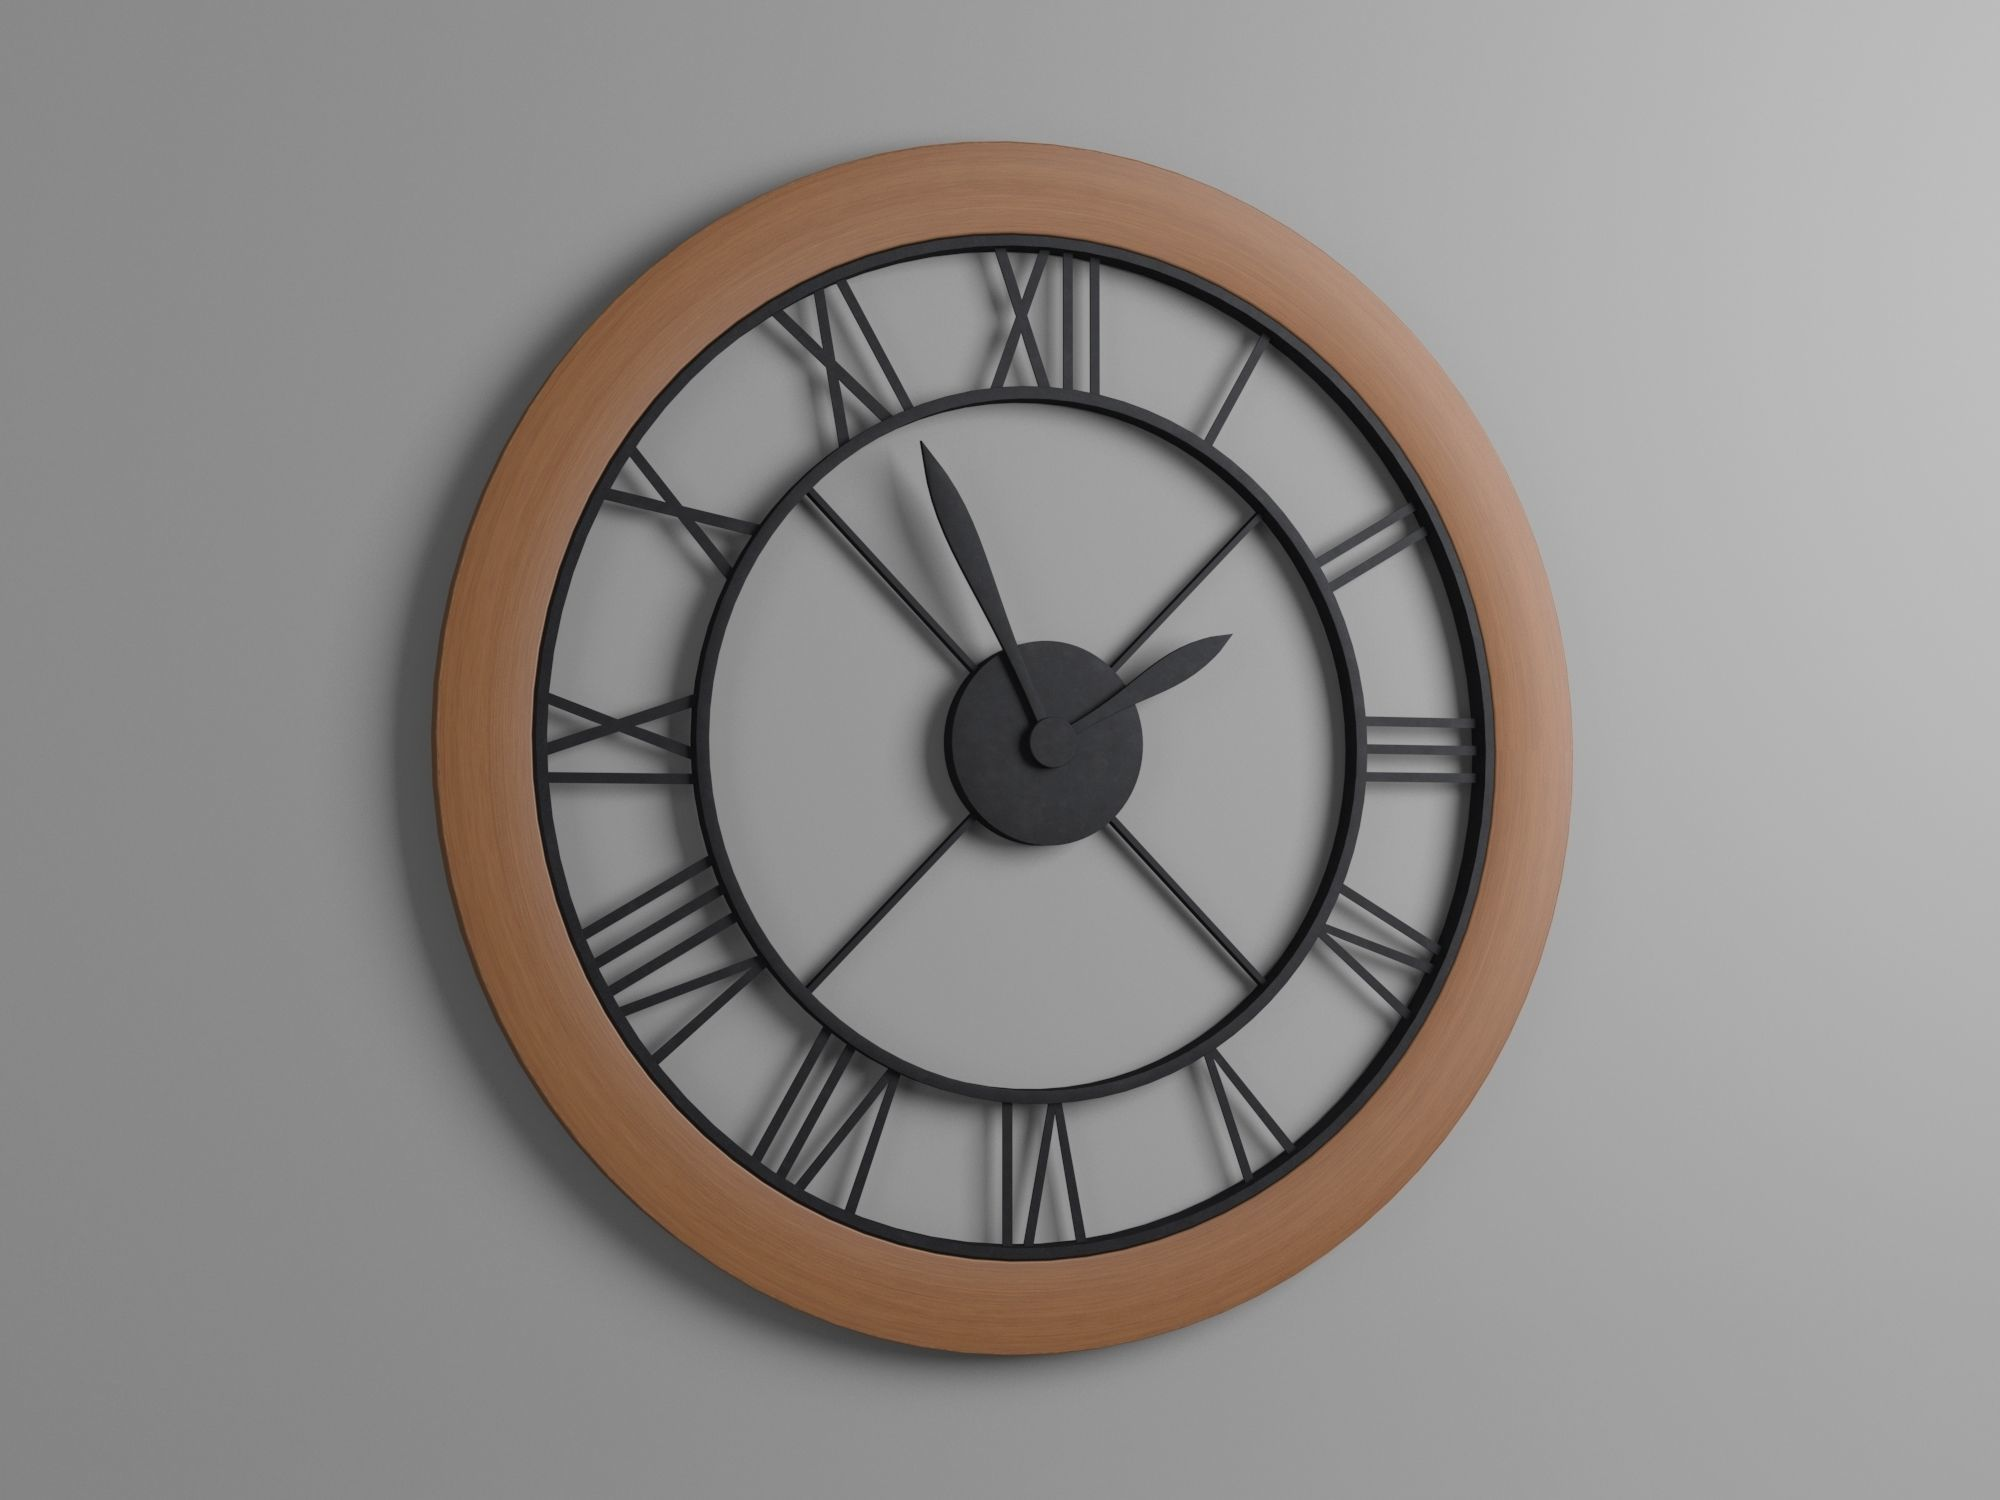 The Wall Clock With Roman Numerals By